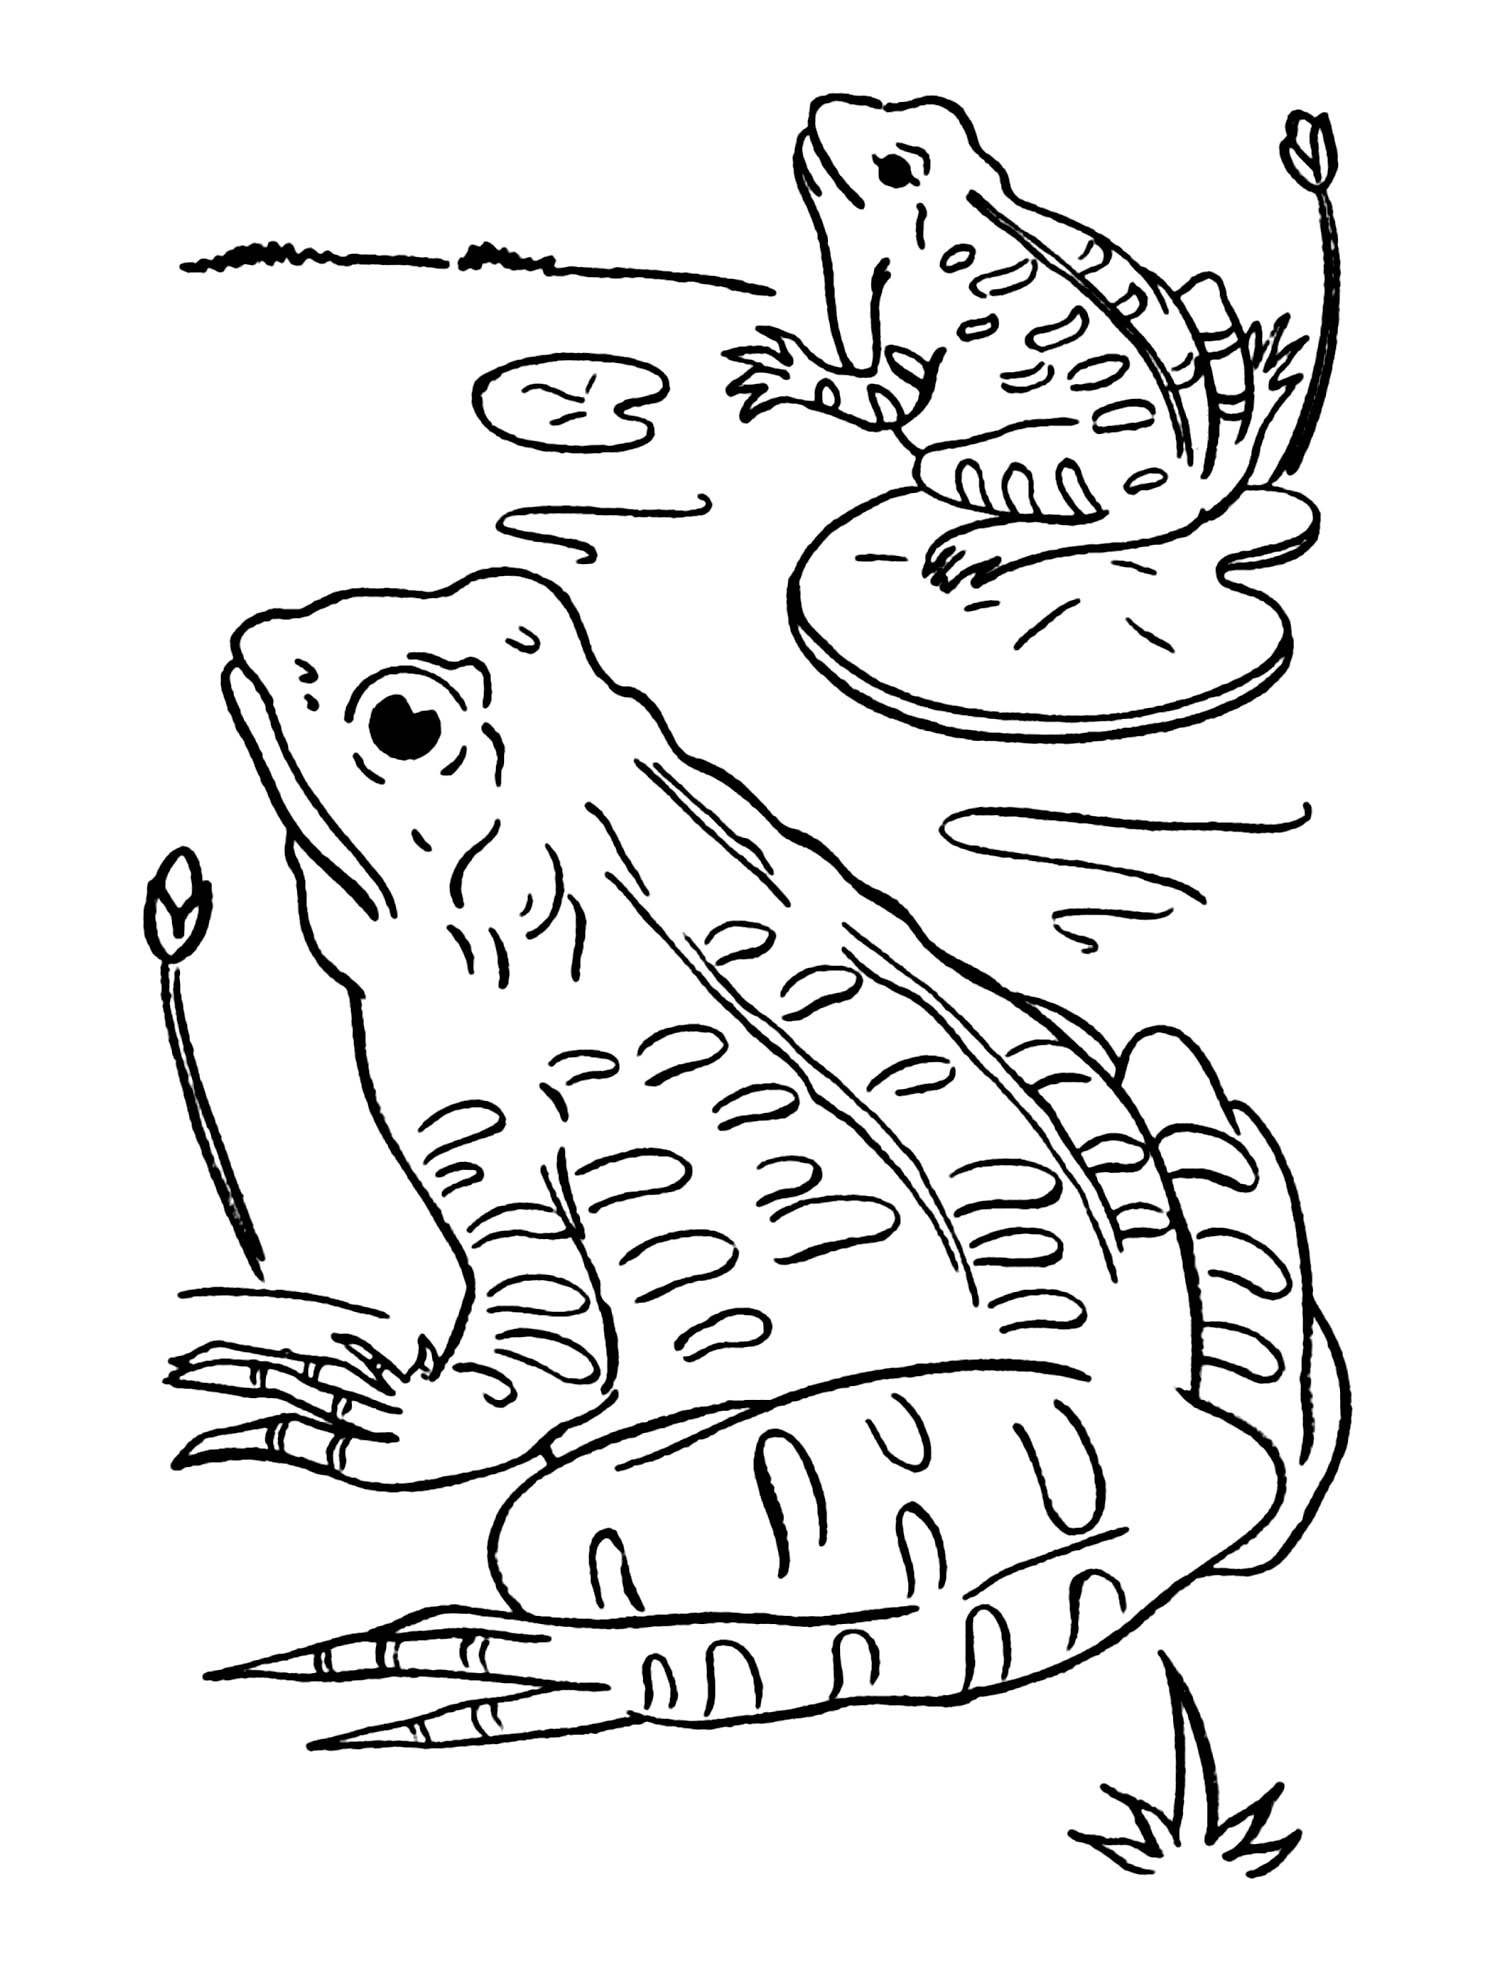 Funny Frogs coloring page for children